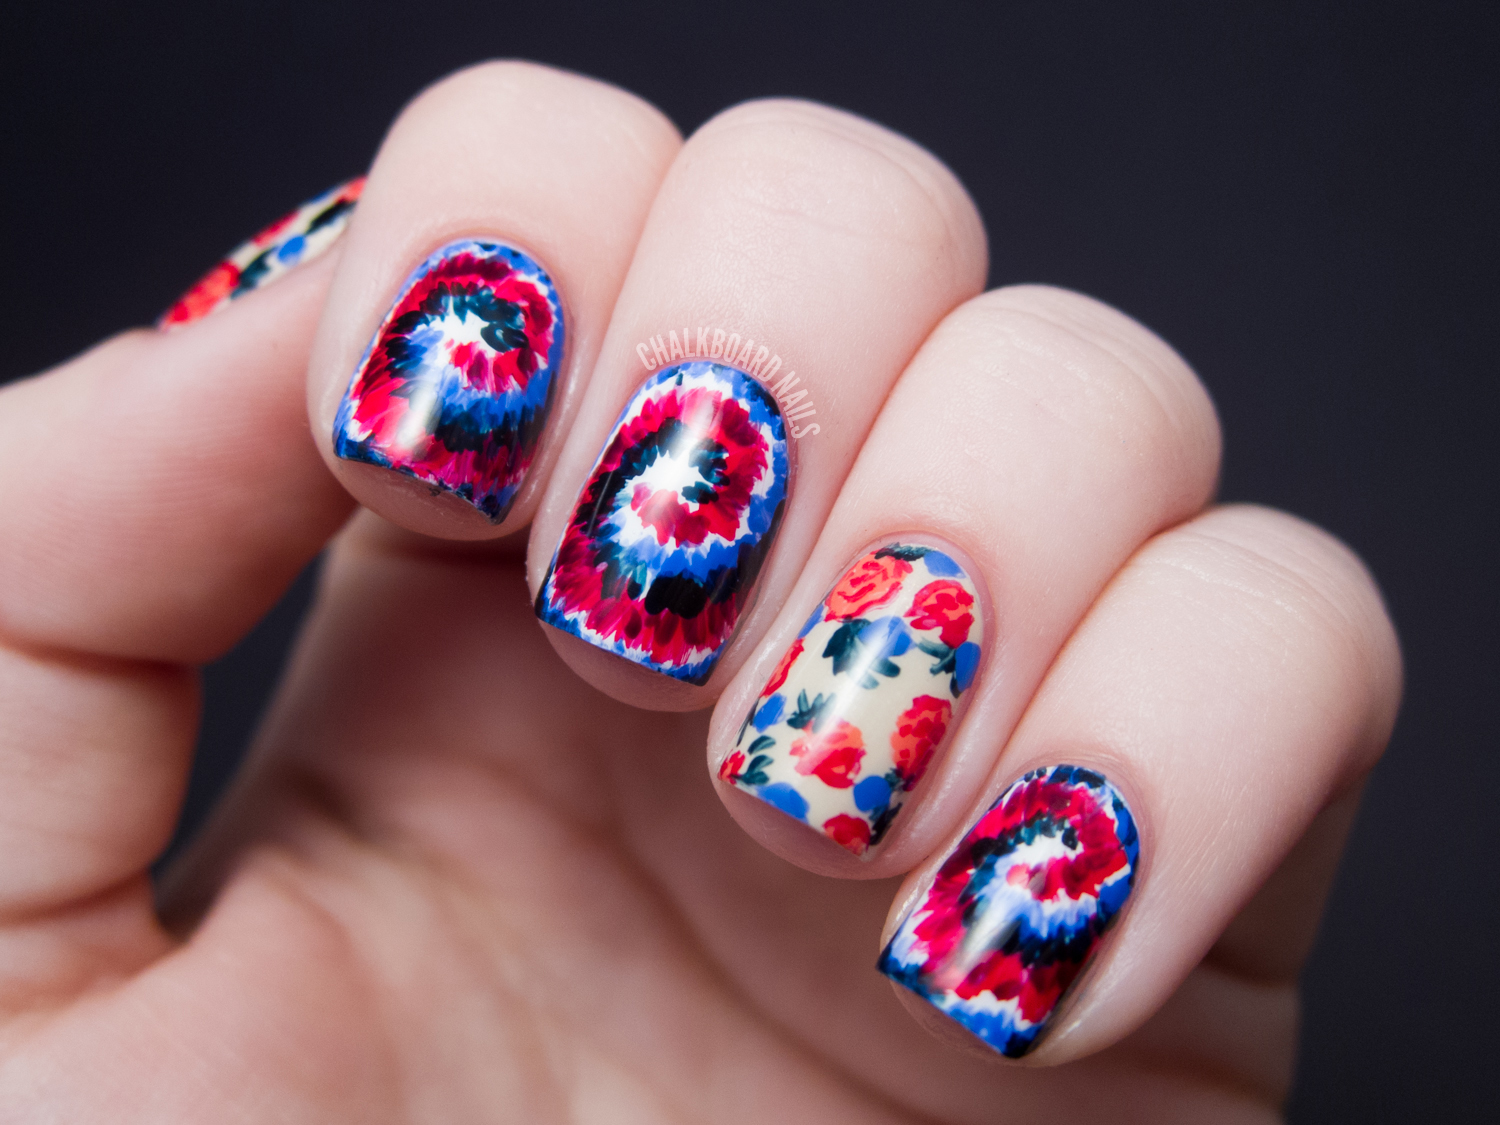 Sally Hansen X Rodarte Tie Dye And Floral Mix Tutorial